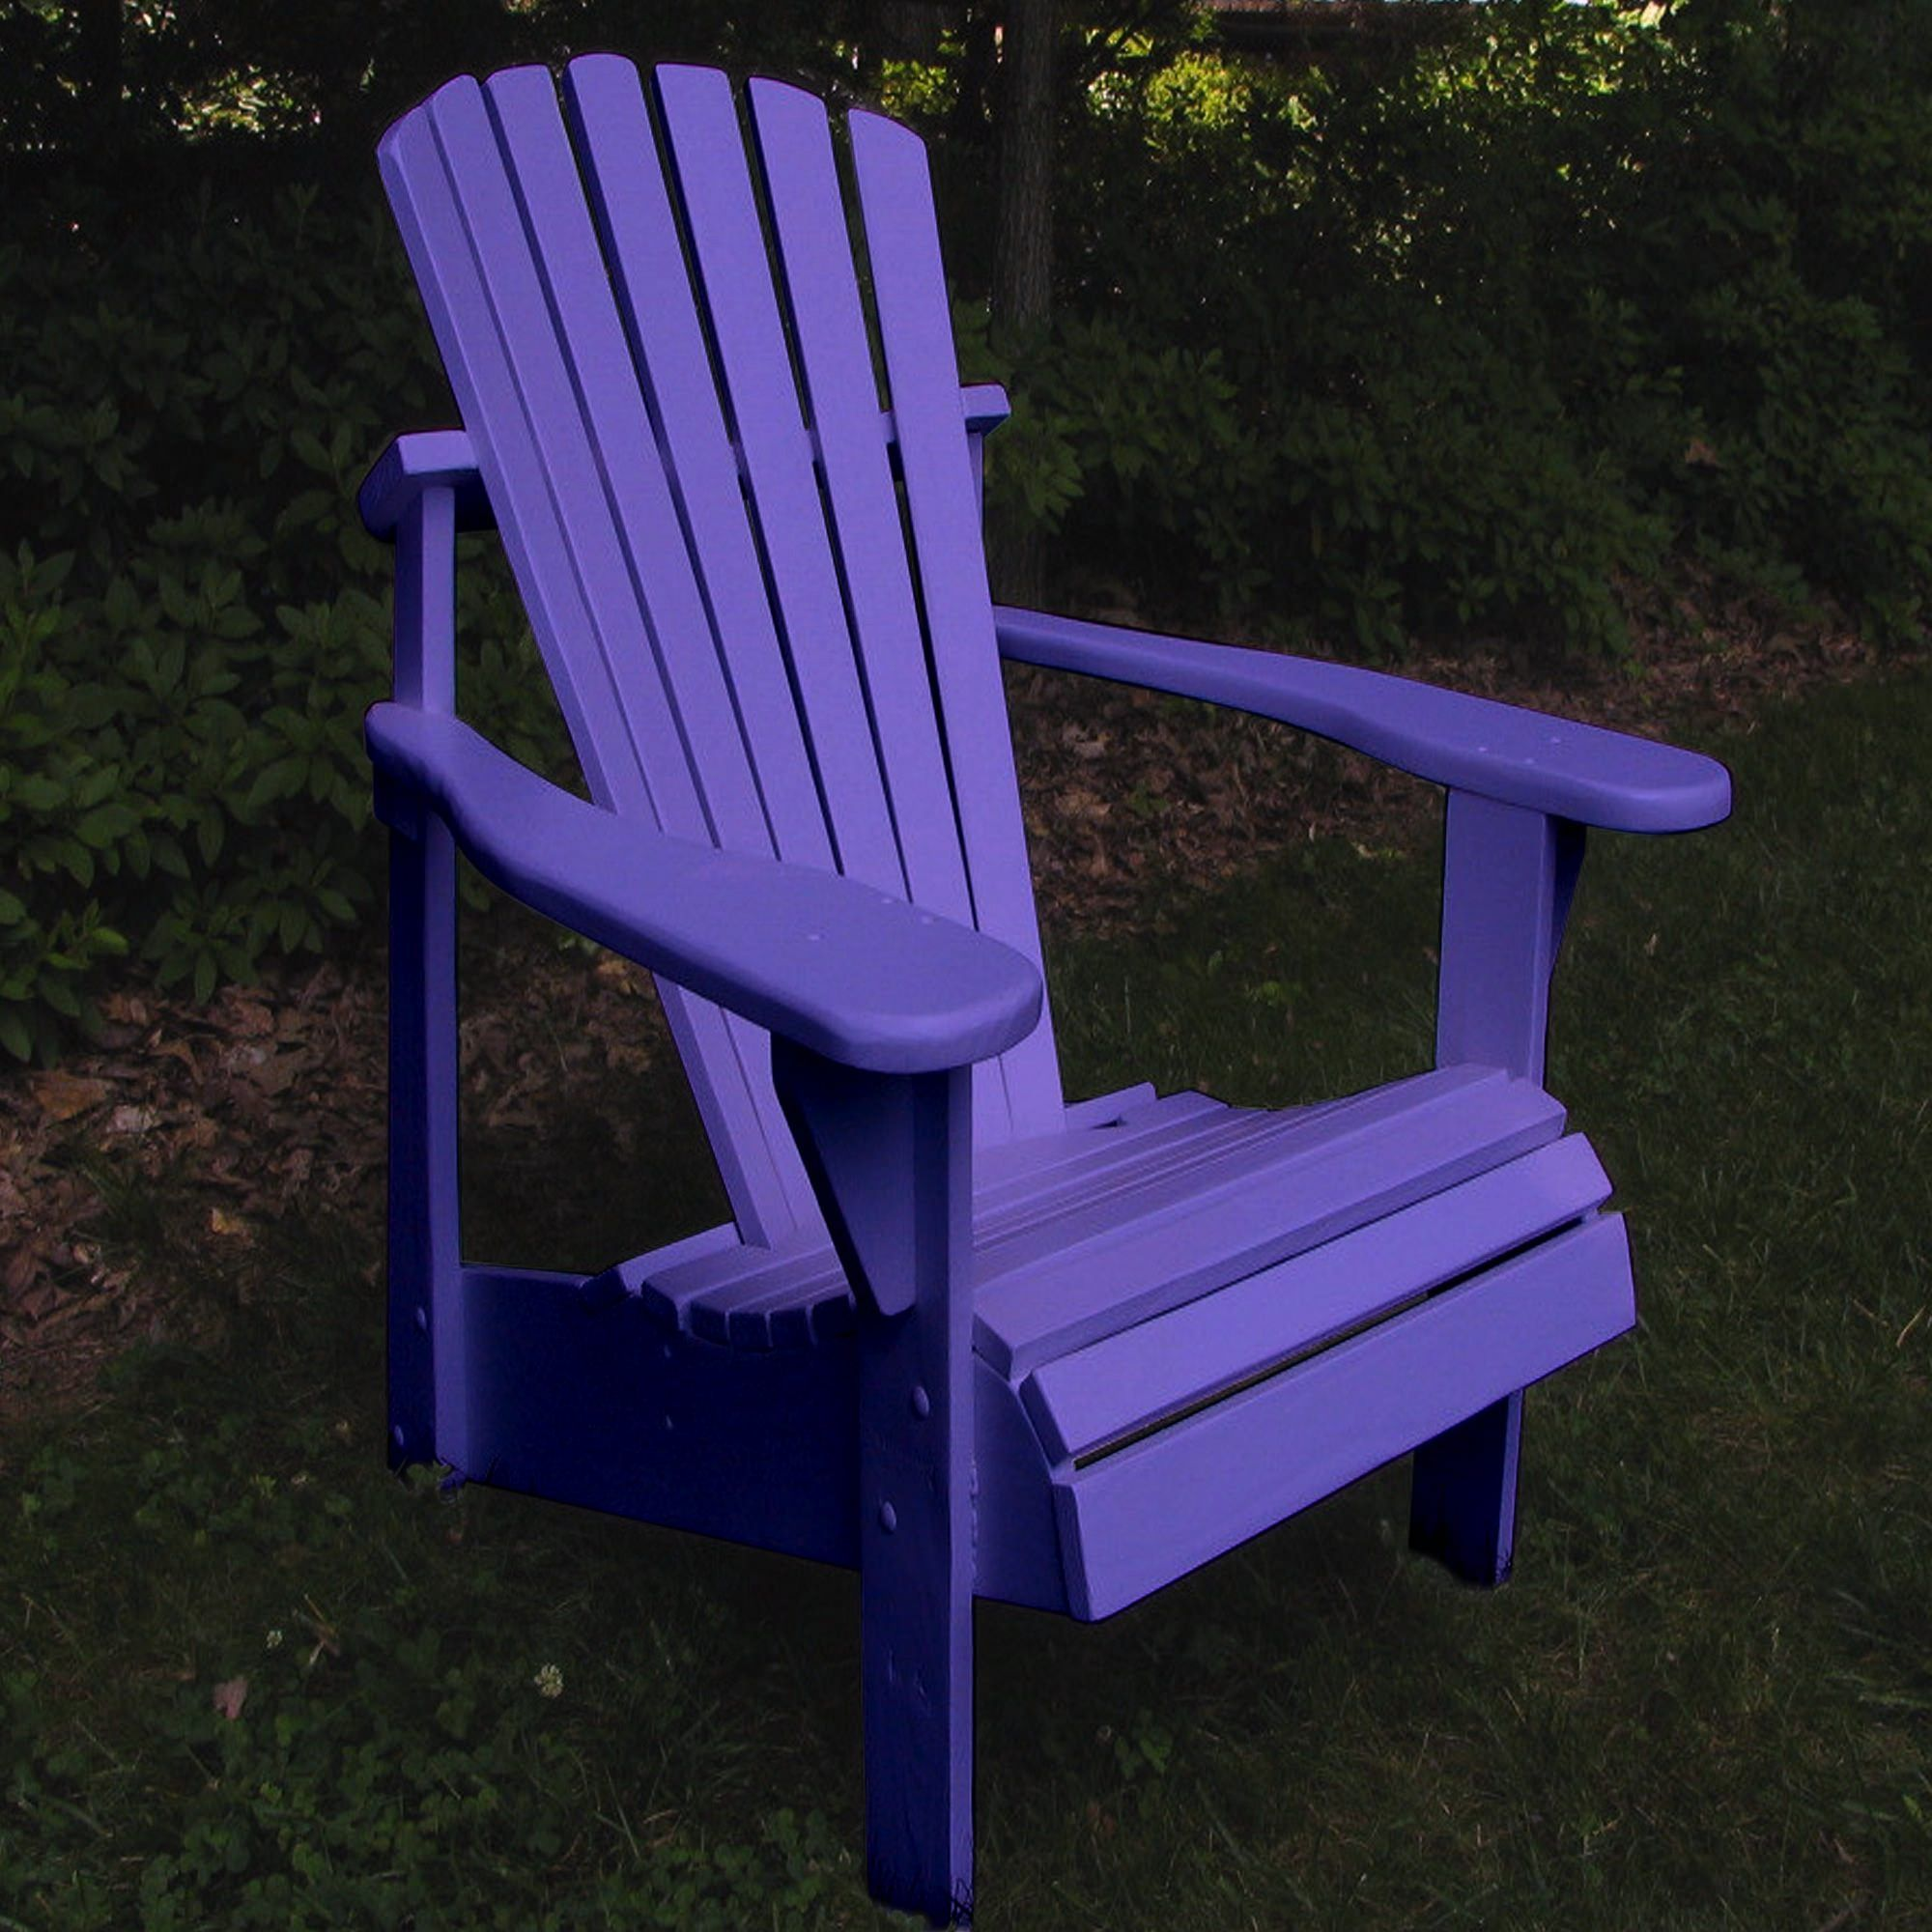 Pair of Painted Adirondack Chair in 2019 Adirondack